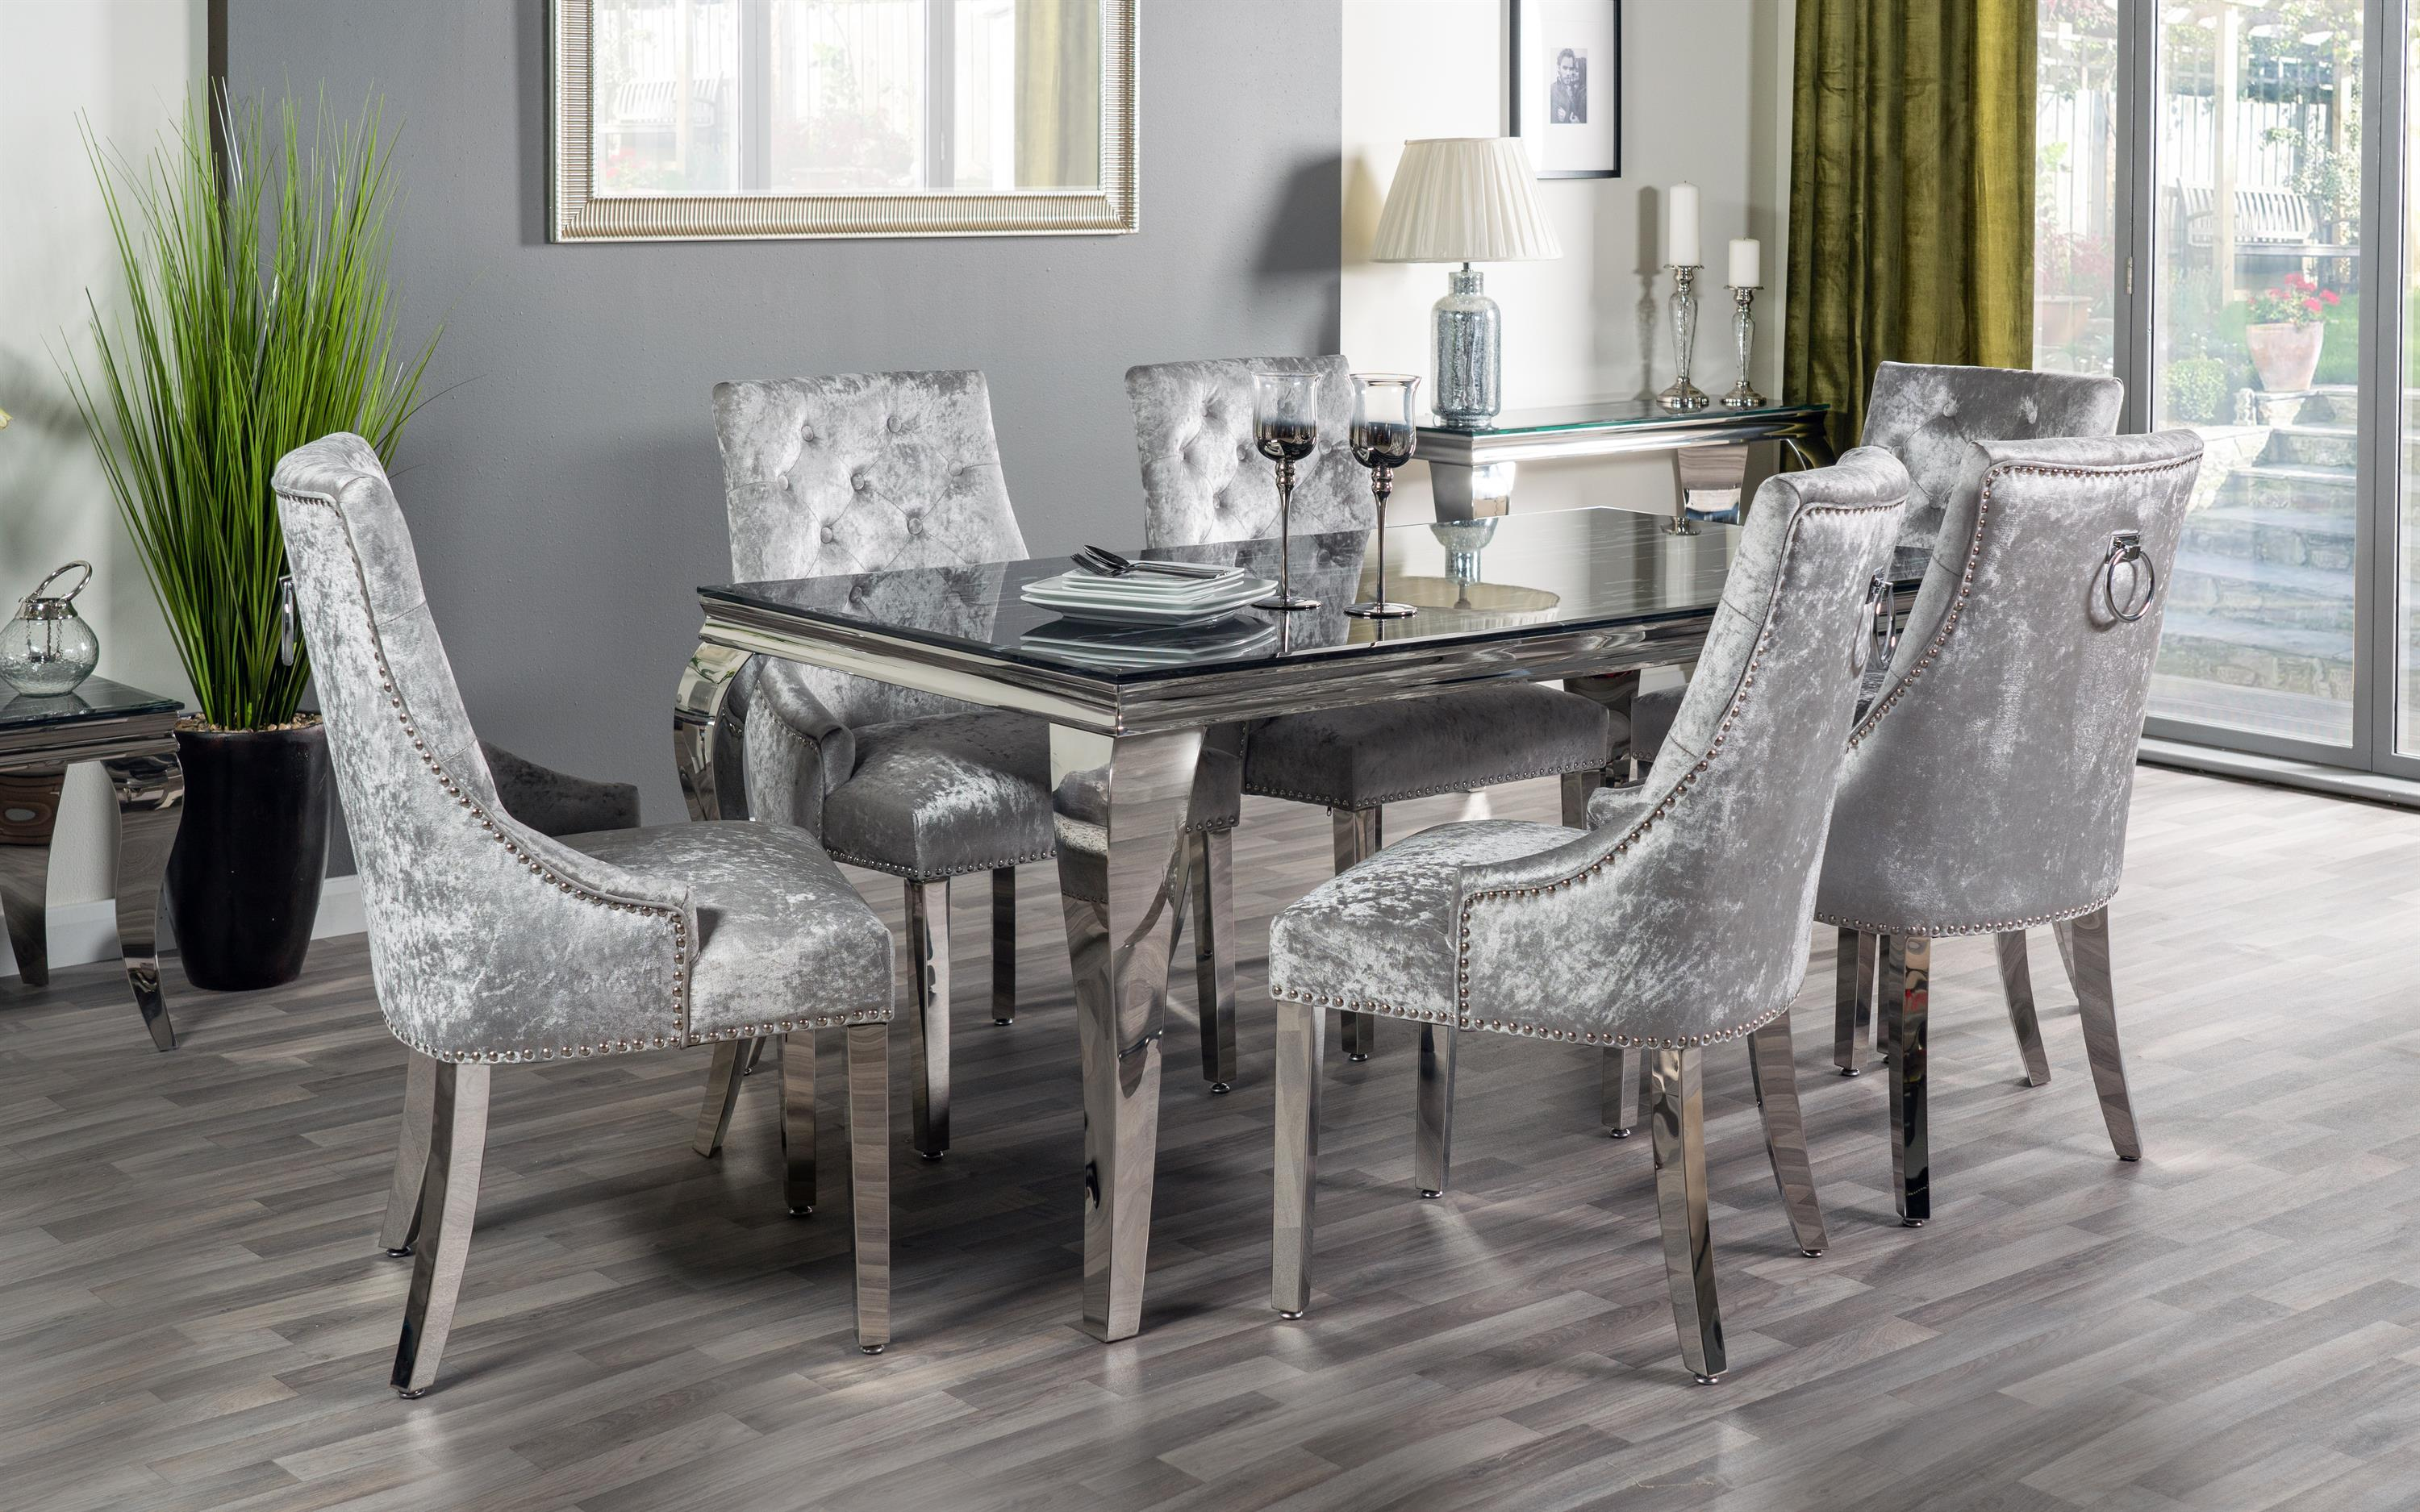 Paris Marble Effect Dining Table & 6 Silver Chairs